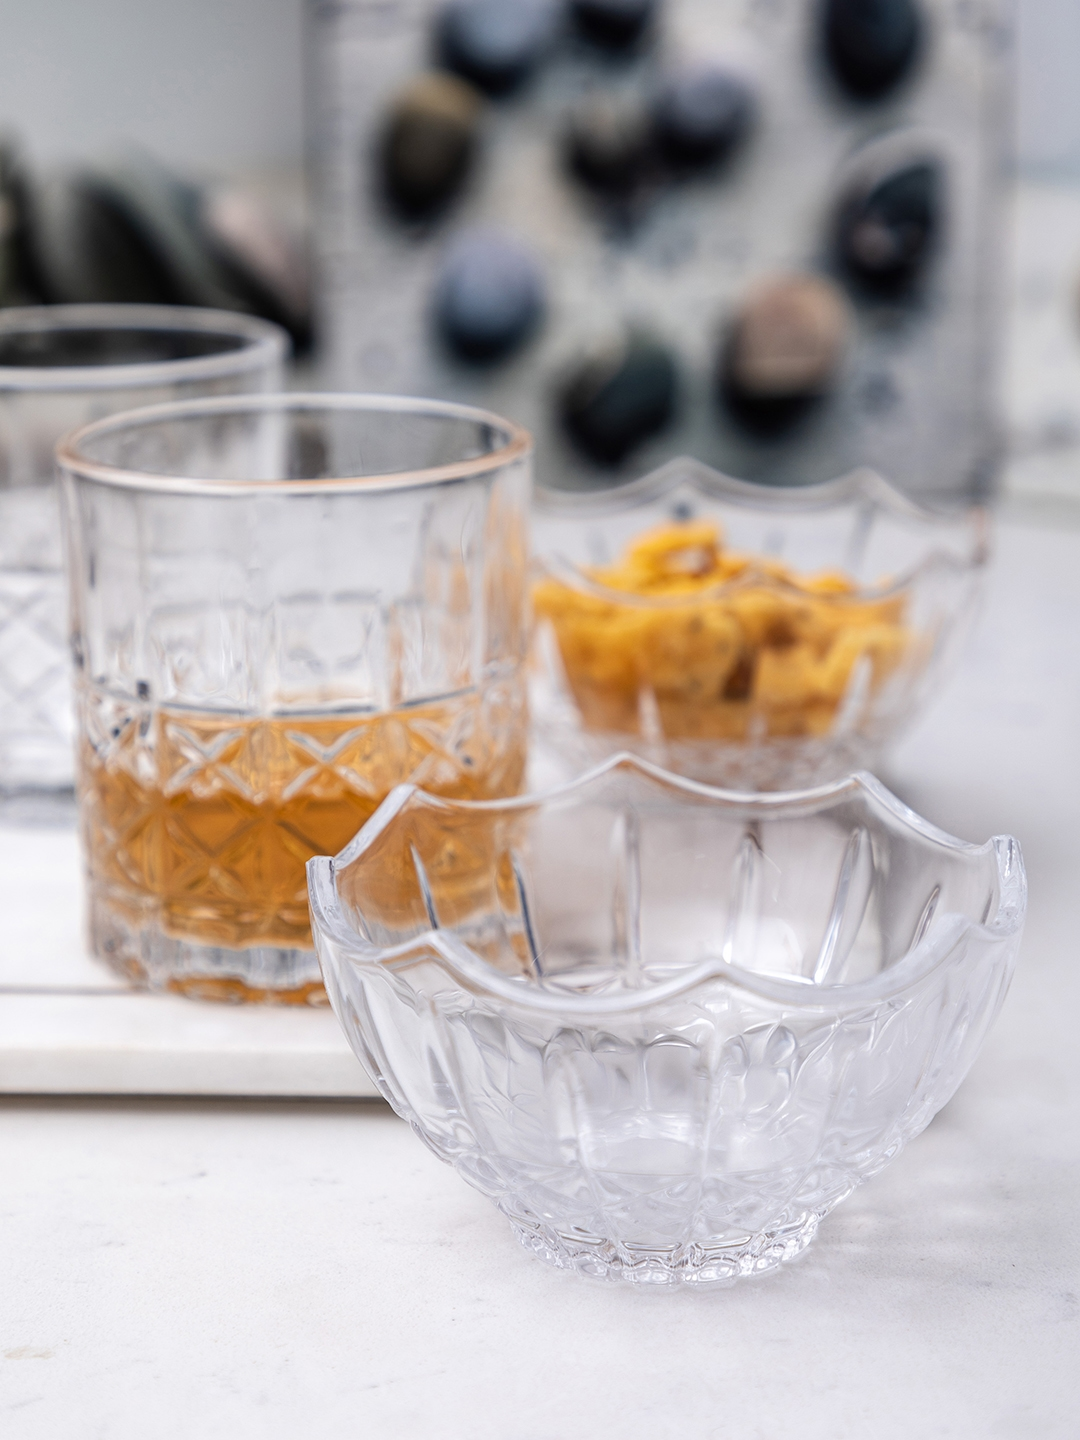 GOODHOMES Set of 8 Transparent Glass Tumblers With Bowls